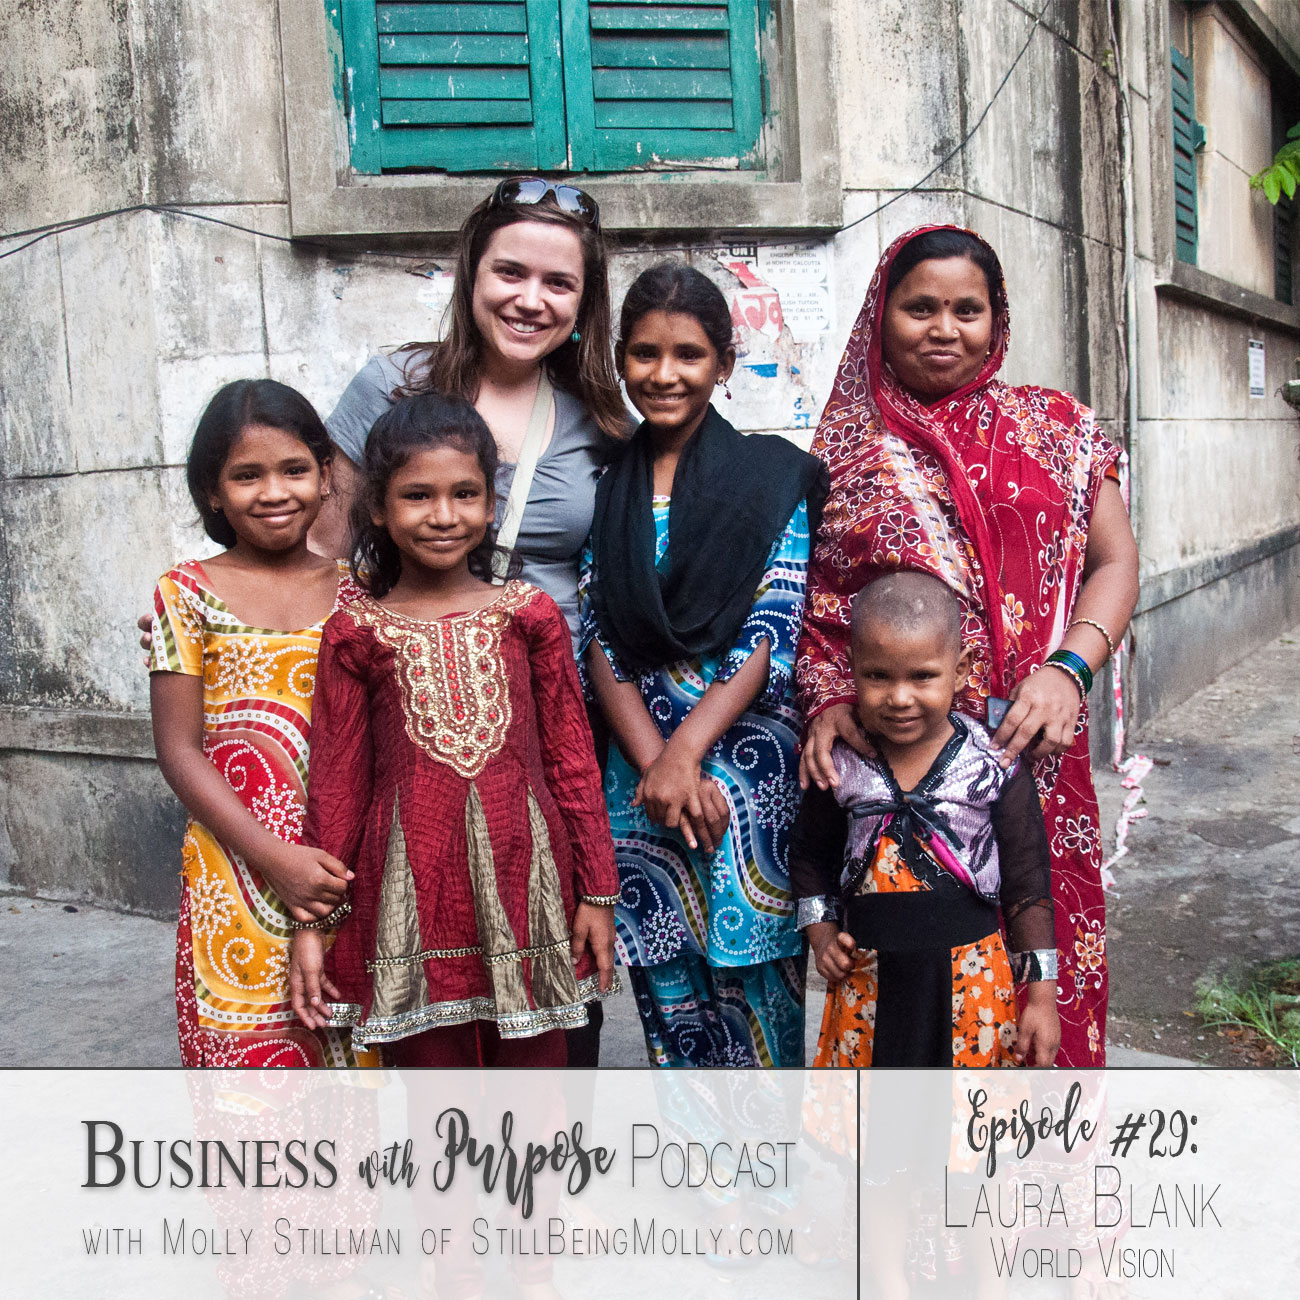 EP. 29: World Vision and the Global Water Crisis with Laura Blank